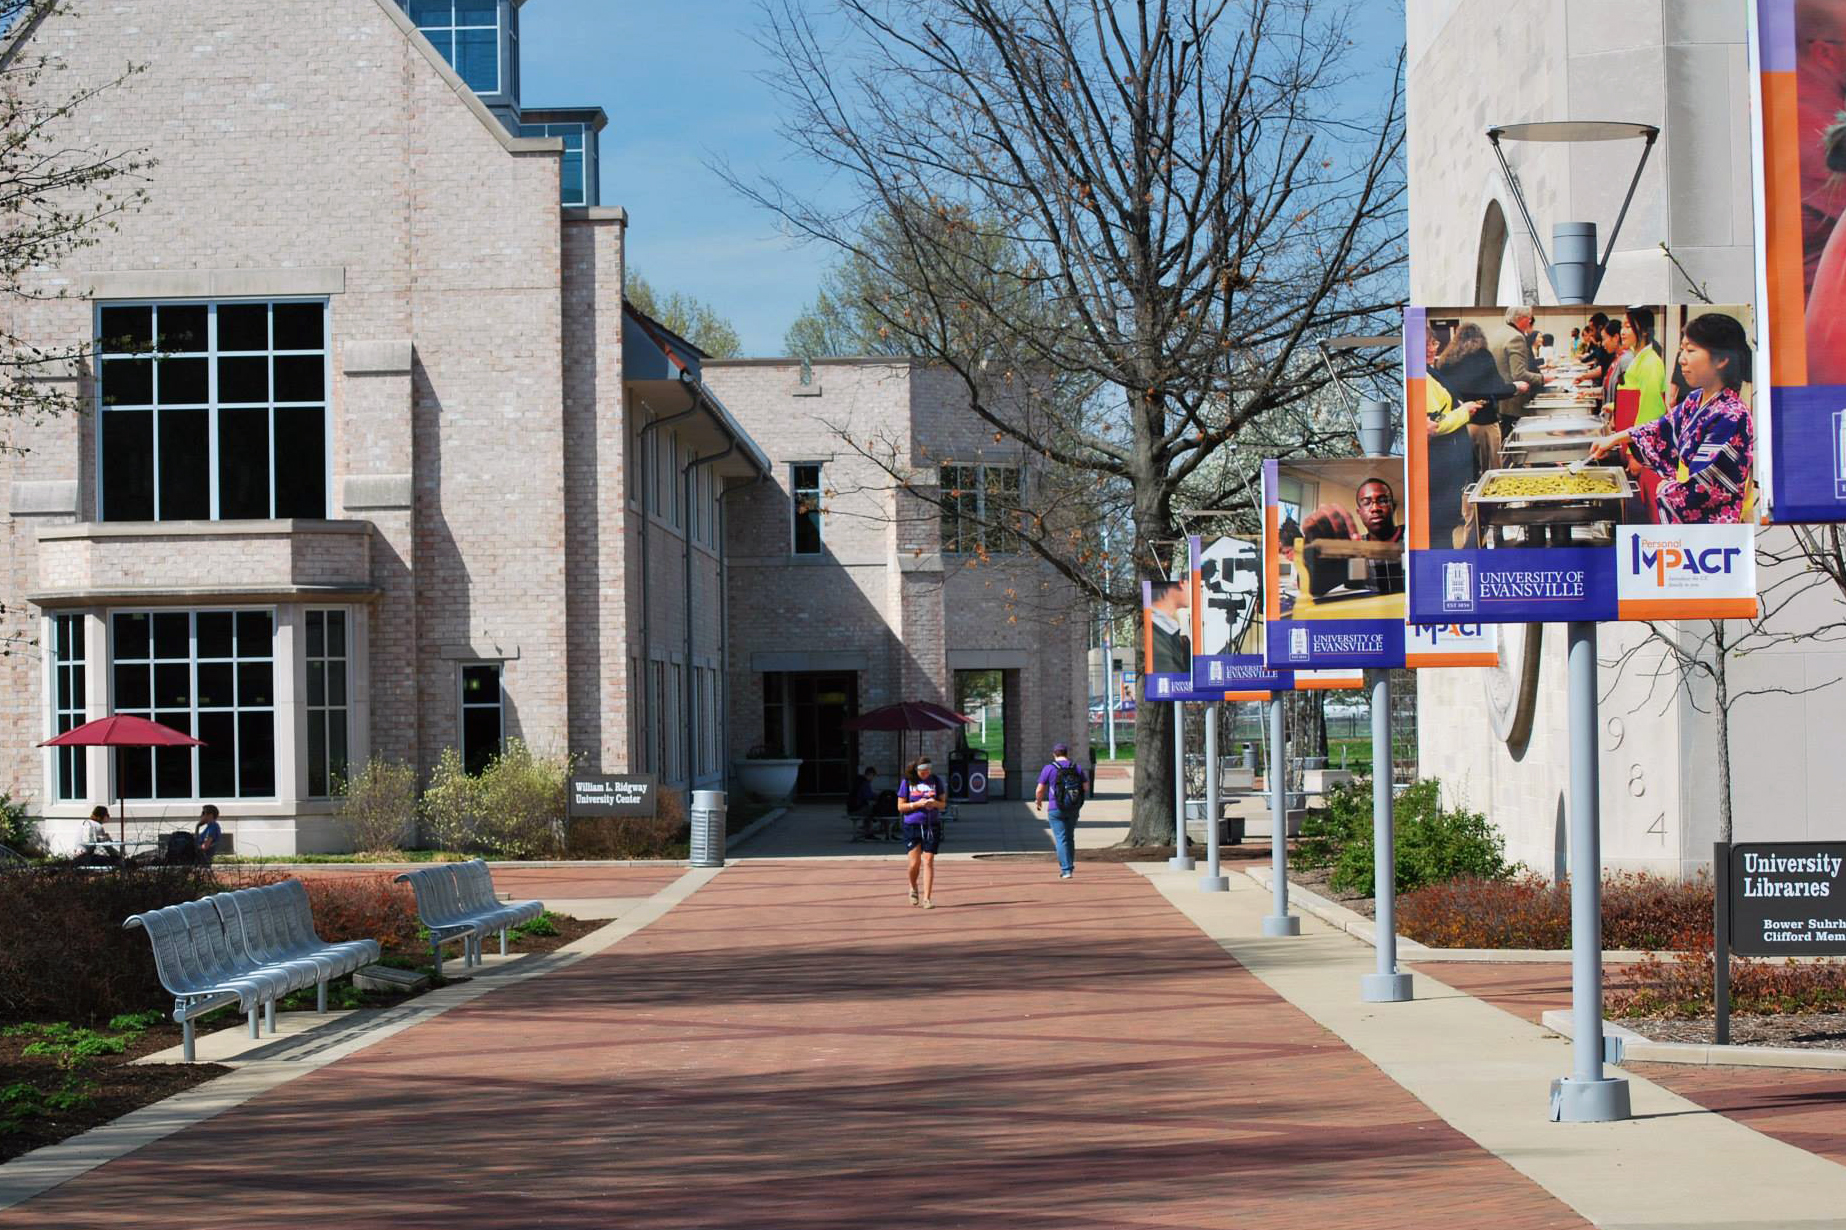 170815-merit-colleges-by-state-university-of-evansville